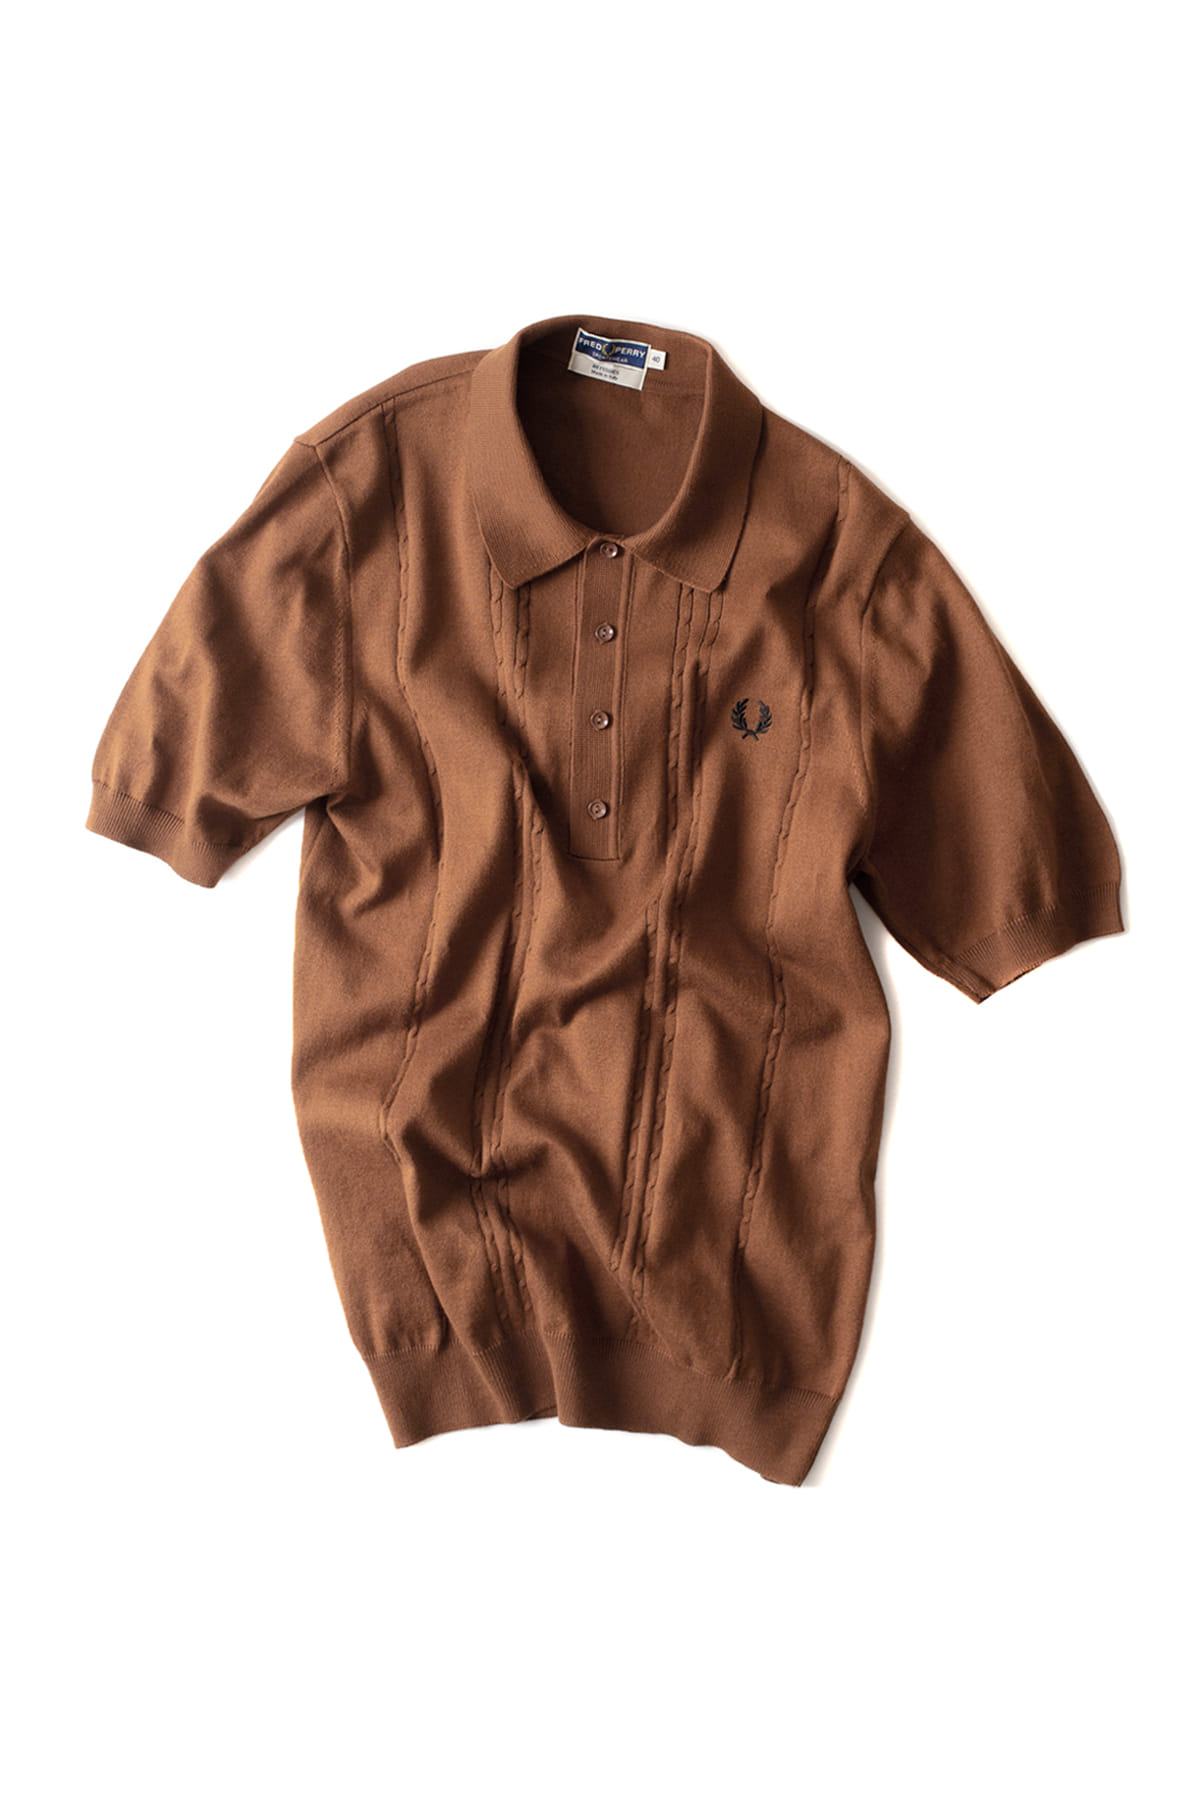 FRED PERRY : S/S Cable Knitted Shirt (Dark Caramel)